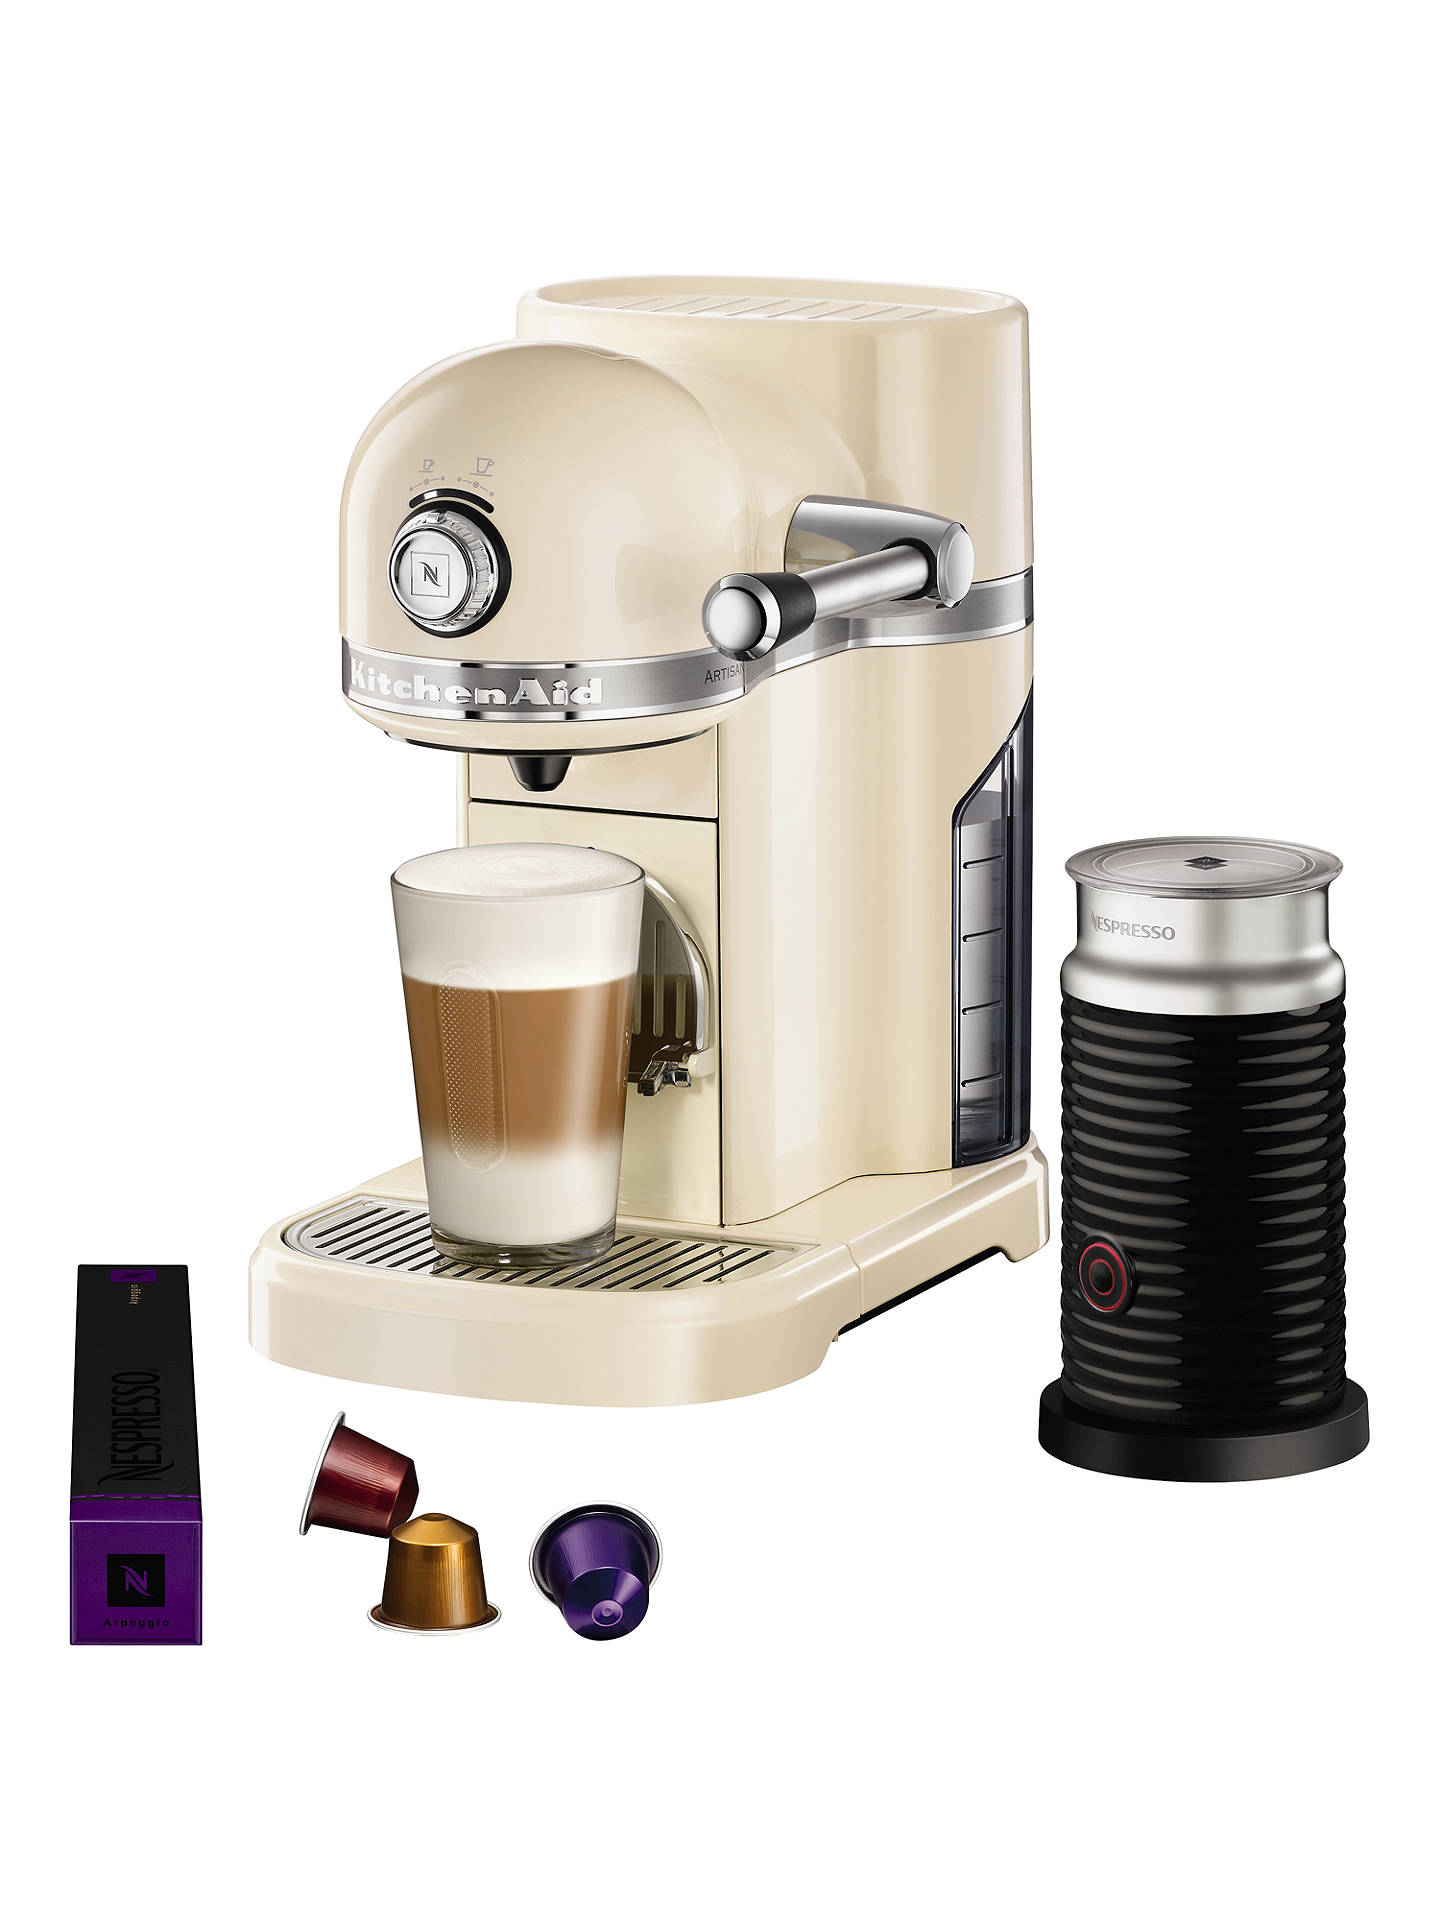 Buy Nespresso Artisan Coffee Machine with Aeroccino by KitchenAid, Almond Cream Online at johnlewis.com